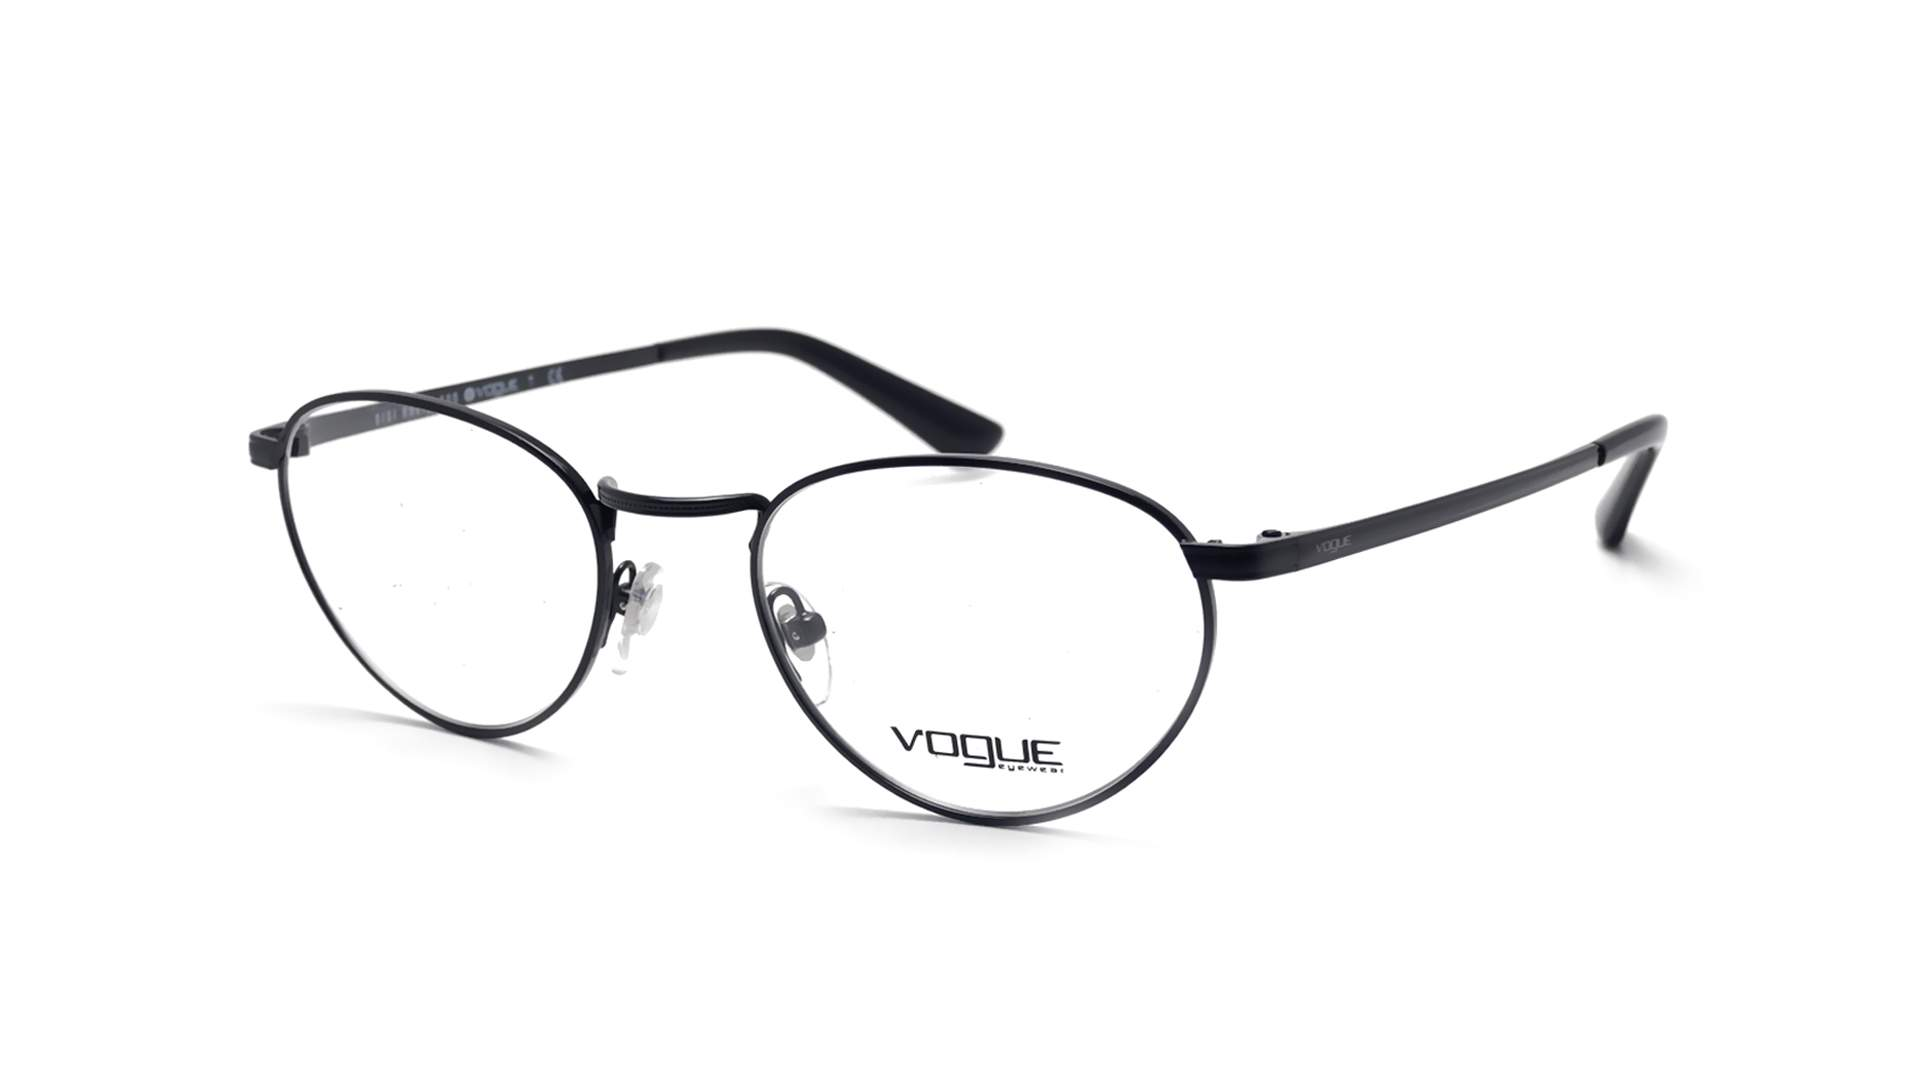 13fc7e5d13f Eyeglasses Vogue Gigi hadid Black VO4084 352 50-20 Small